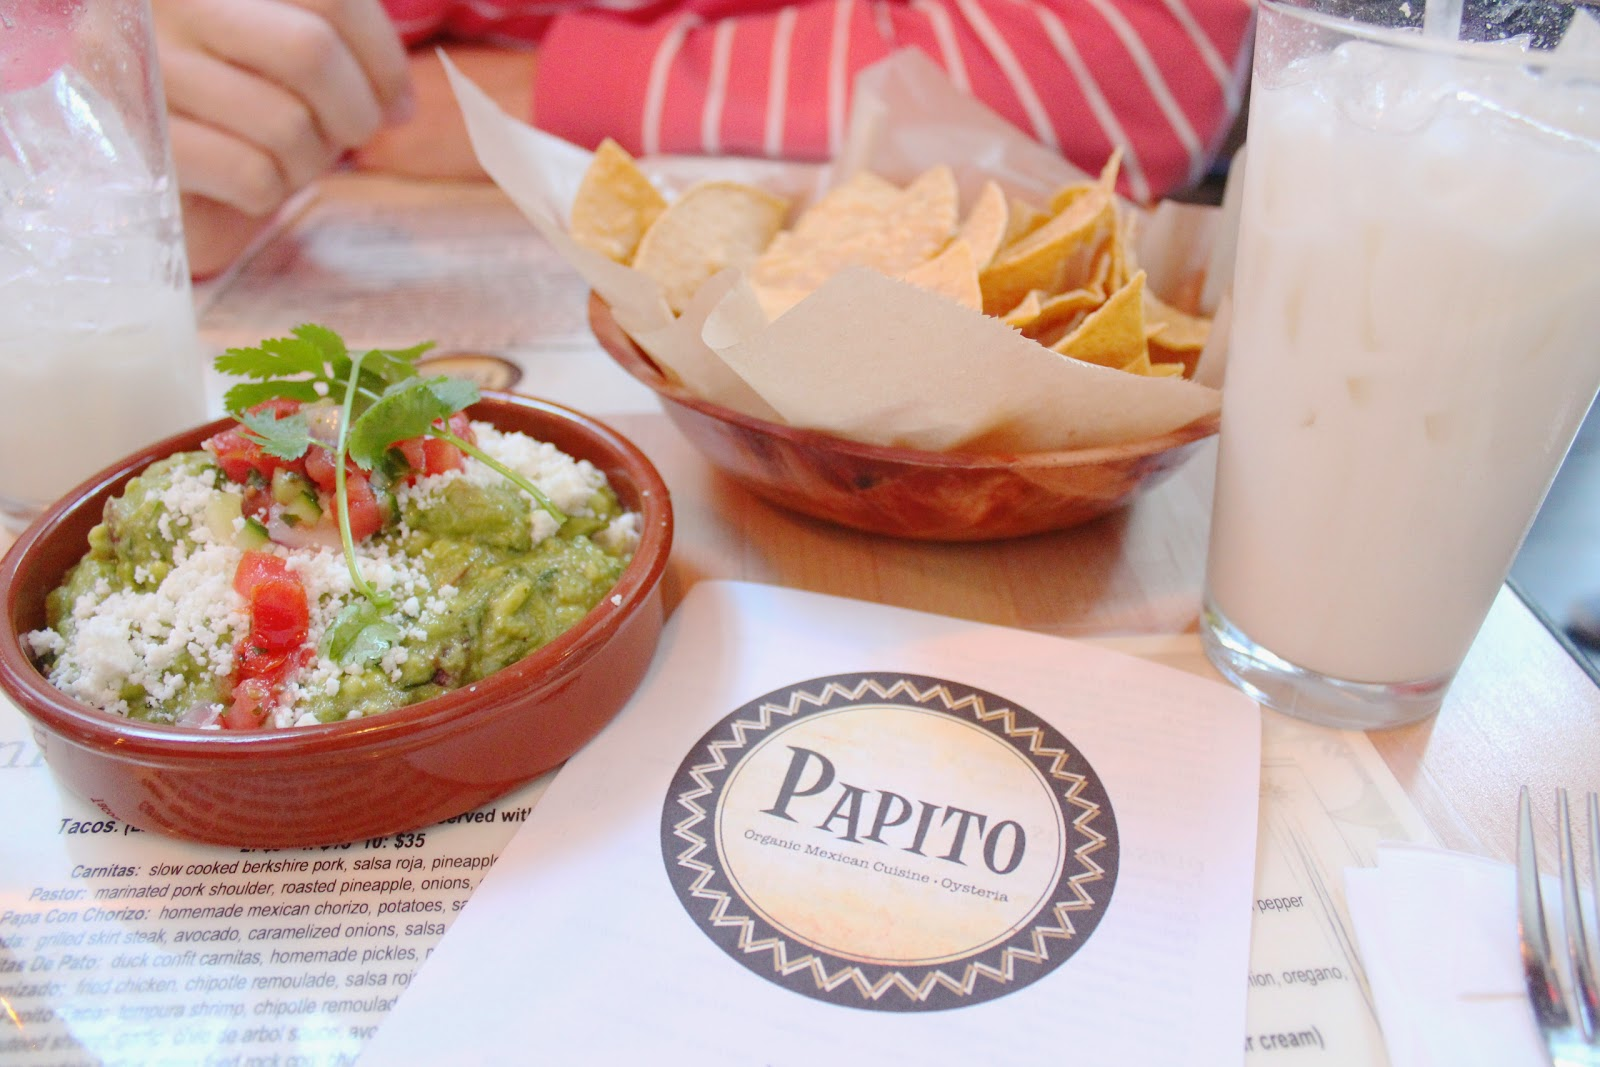 papito west – organic mexican | Well-Traveled Wife